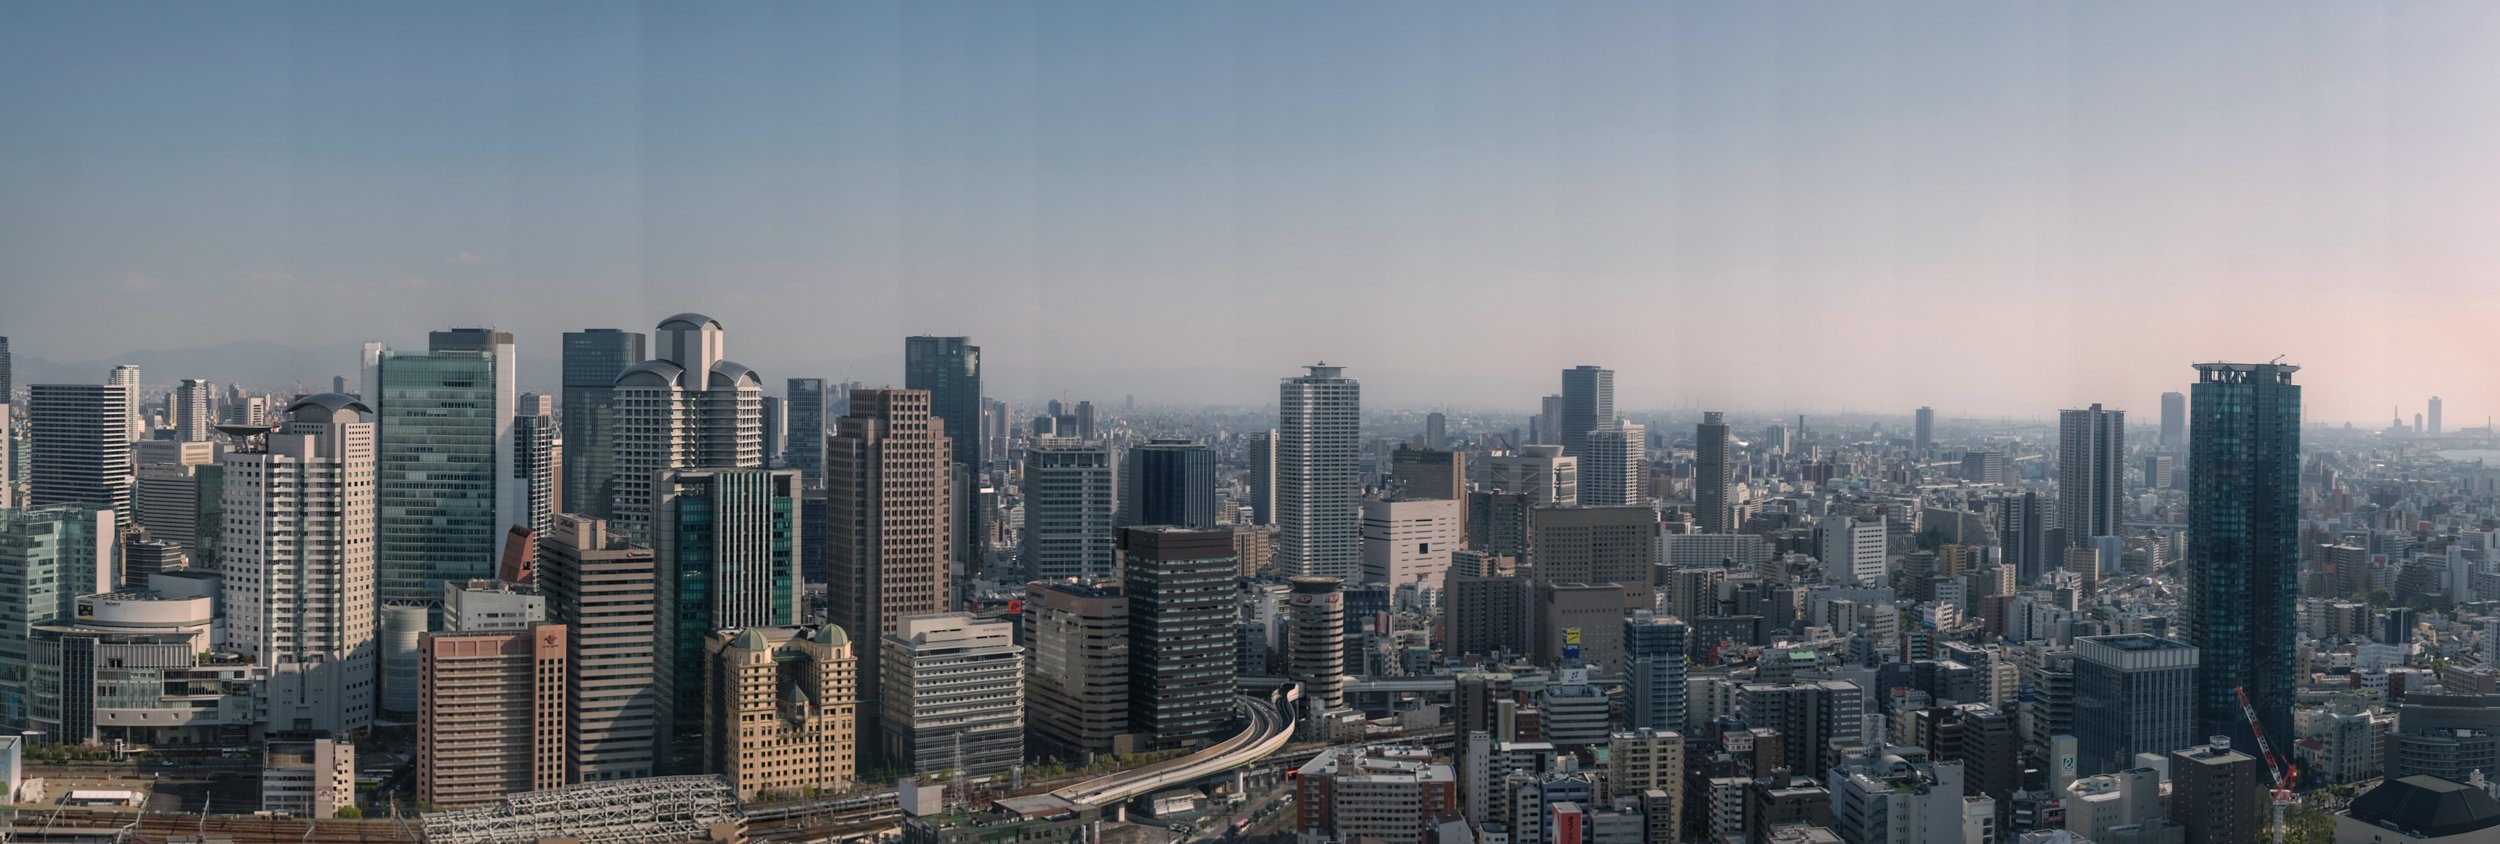 View of Osaka from the Sky building observatory.